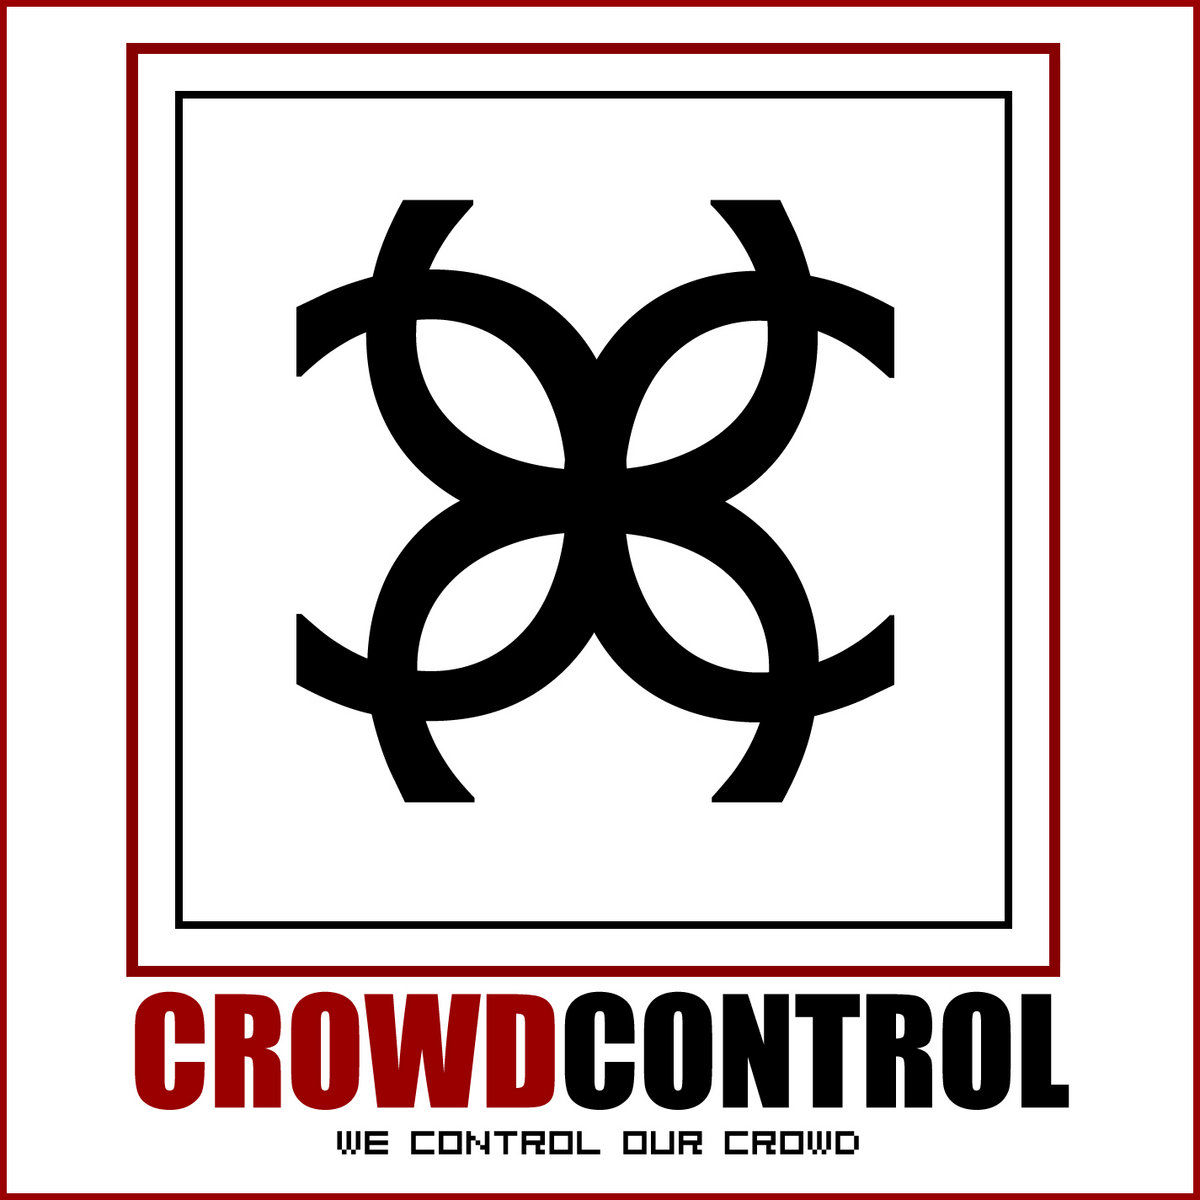 Bow Down Crowd Control